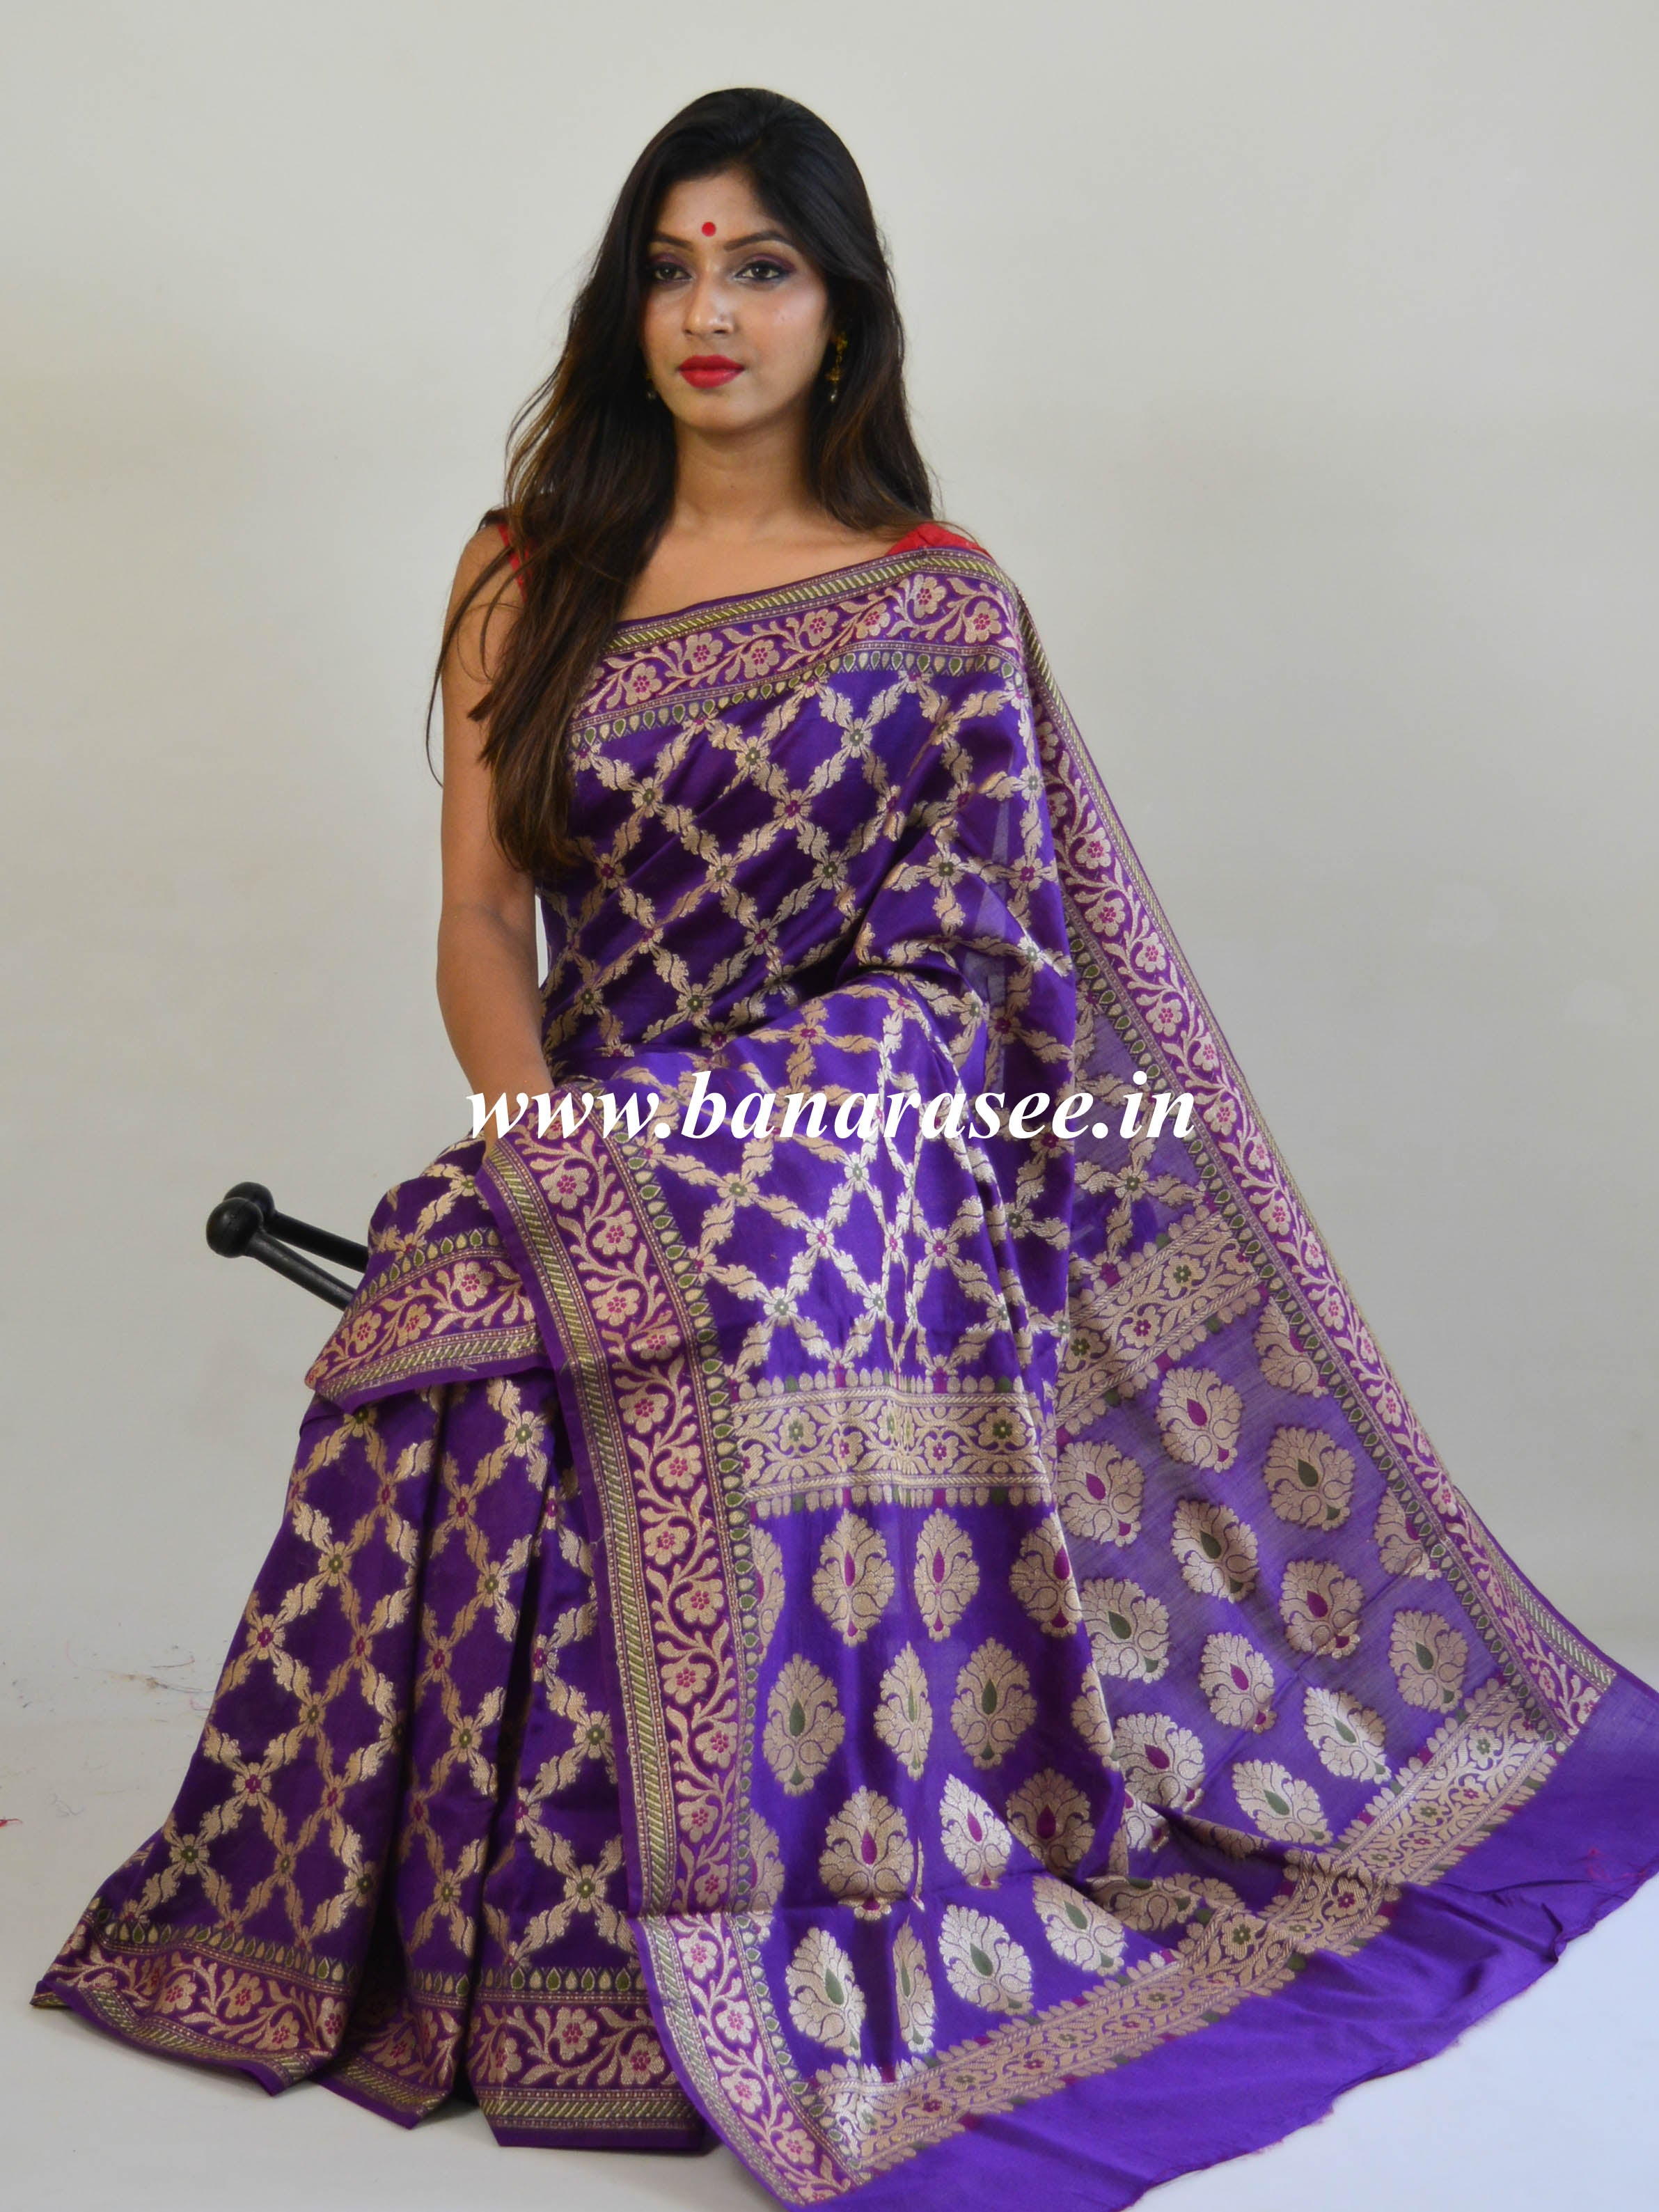 Banarasee Silk Cotton Mix Saree With Jaal Design & Pink Blouse-Violet